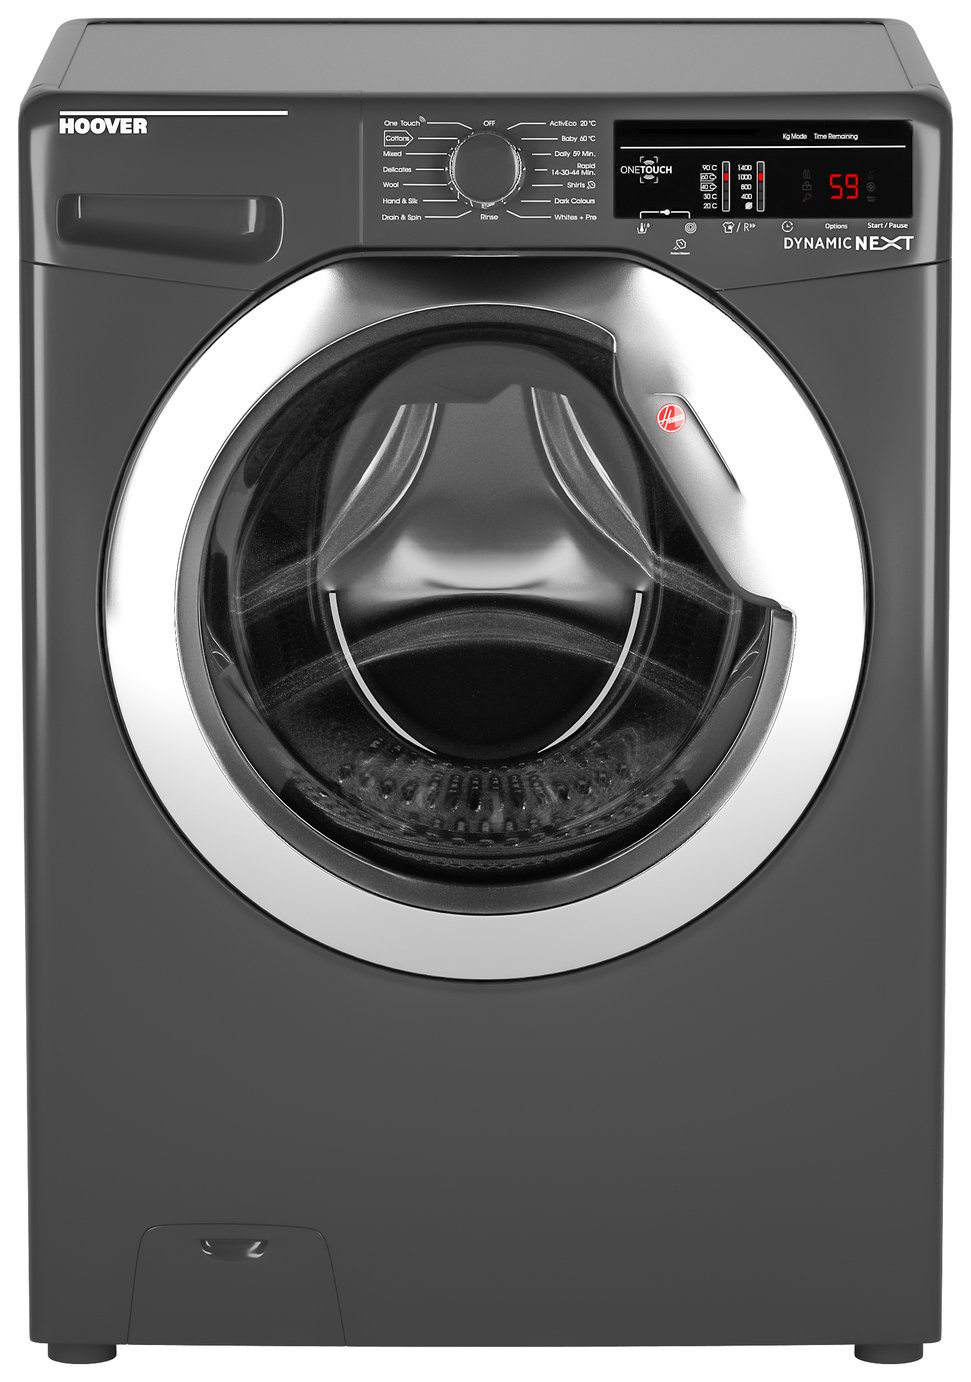 Hoover DXOA 48C3R 8KG 1400 Spin Washing Machine - Graphite